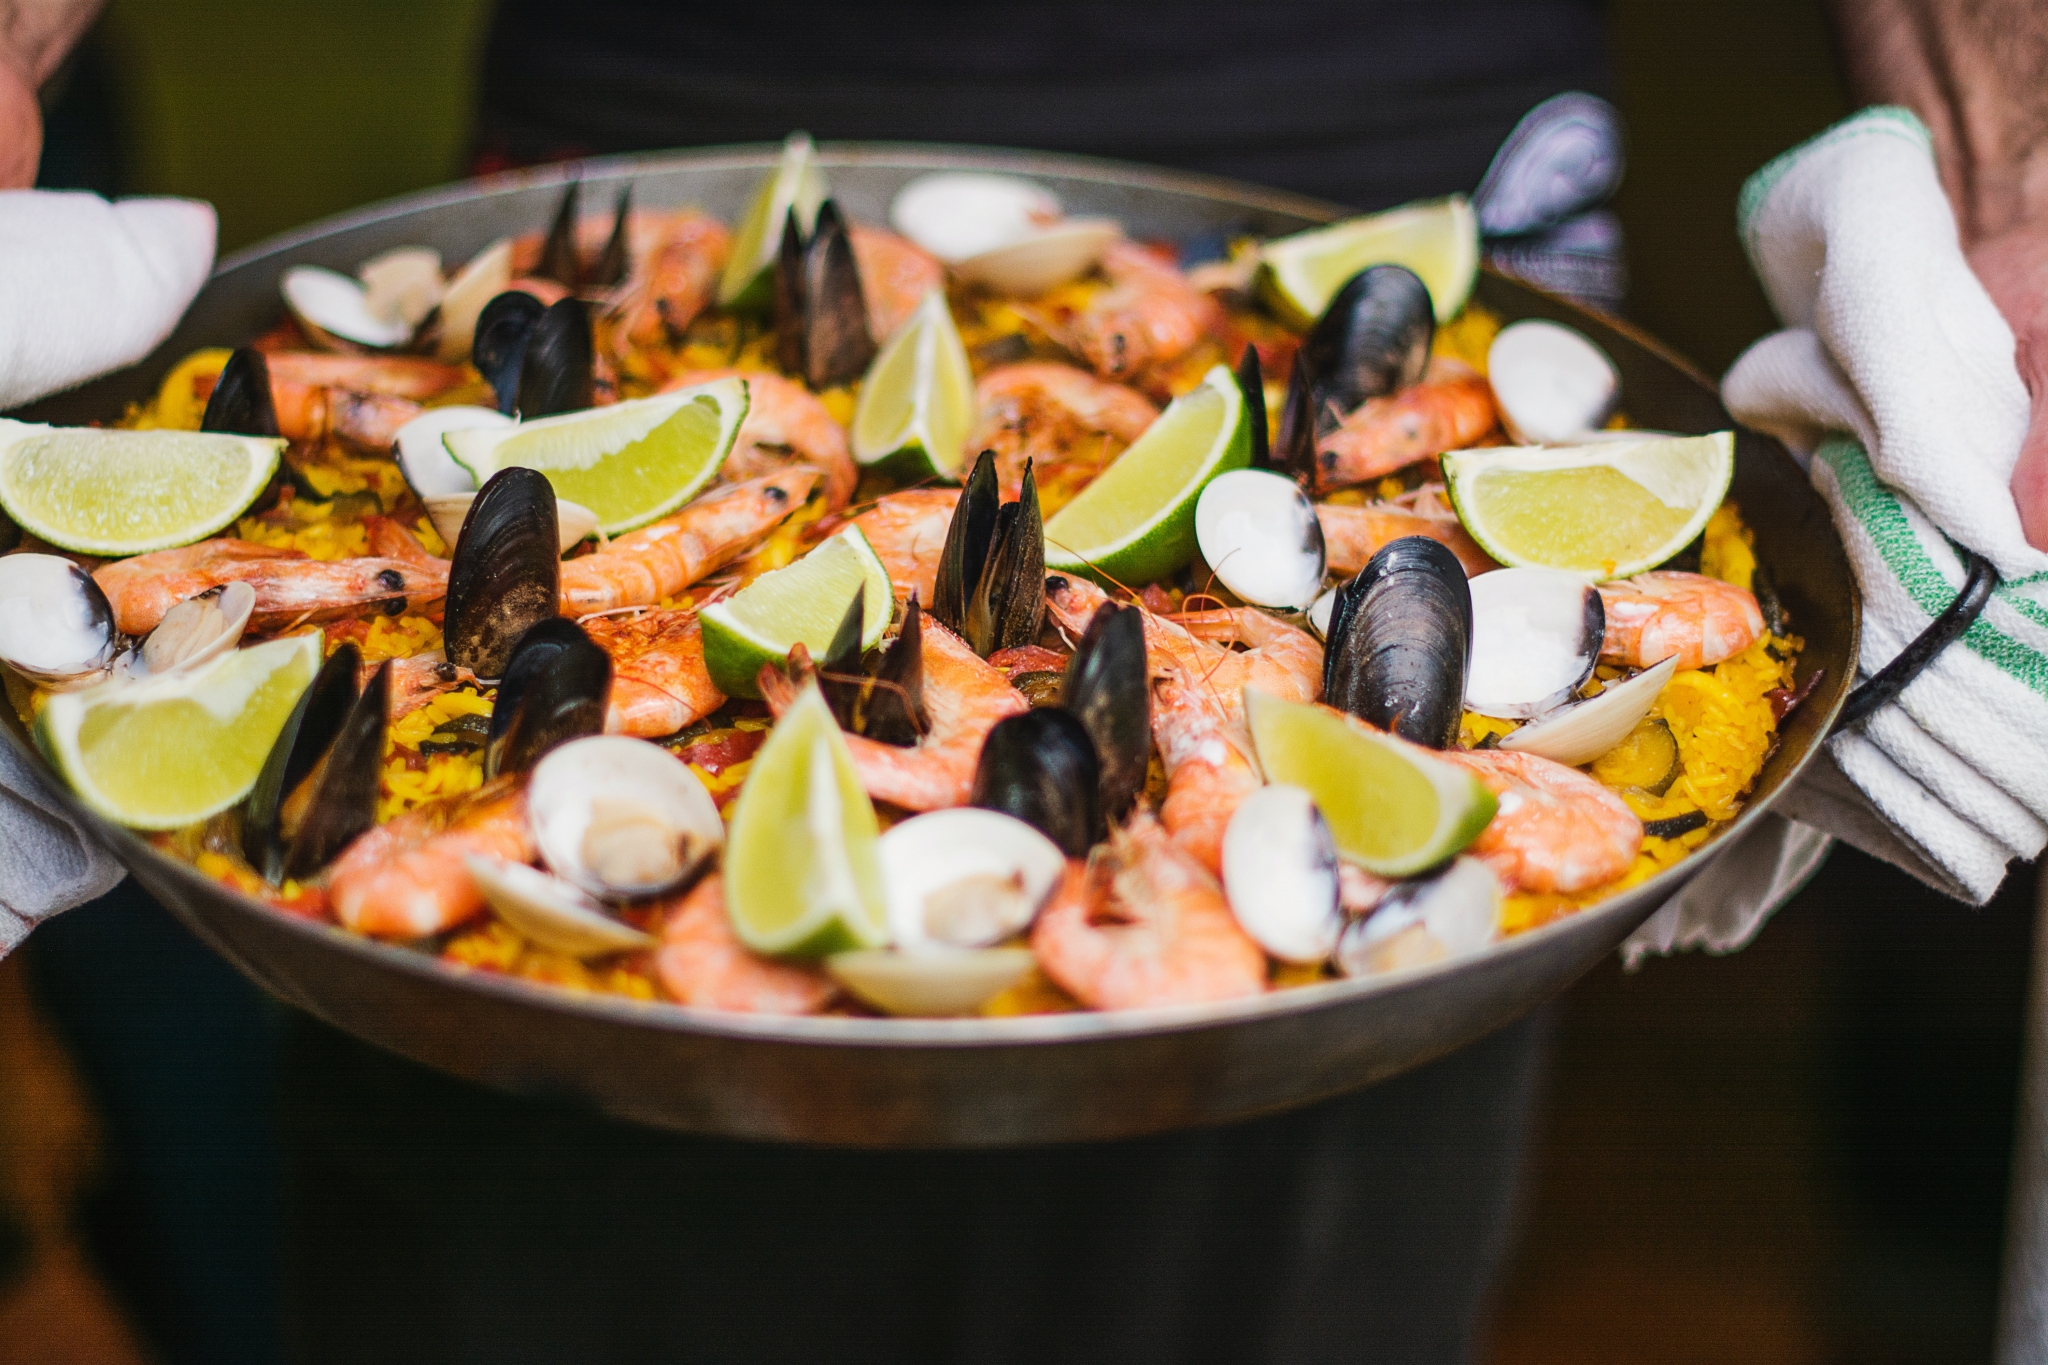 A dish of seafood paella with clams and lime wedges on top